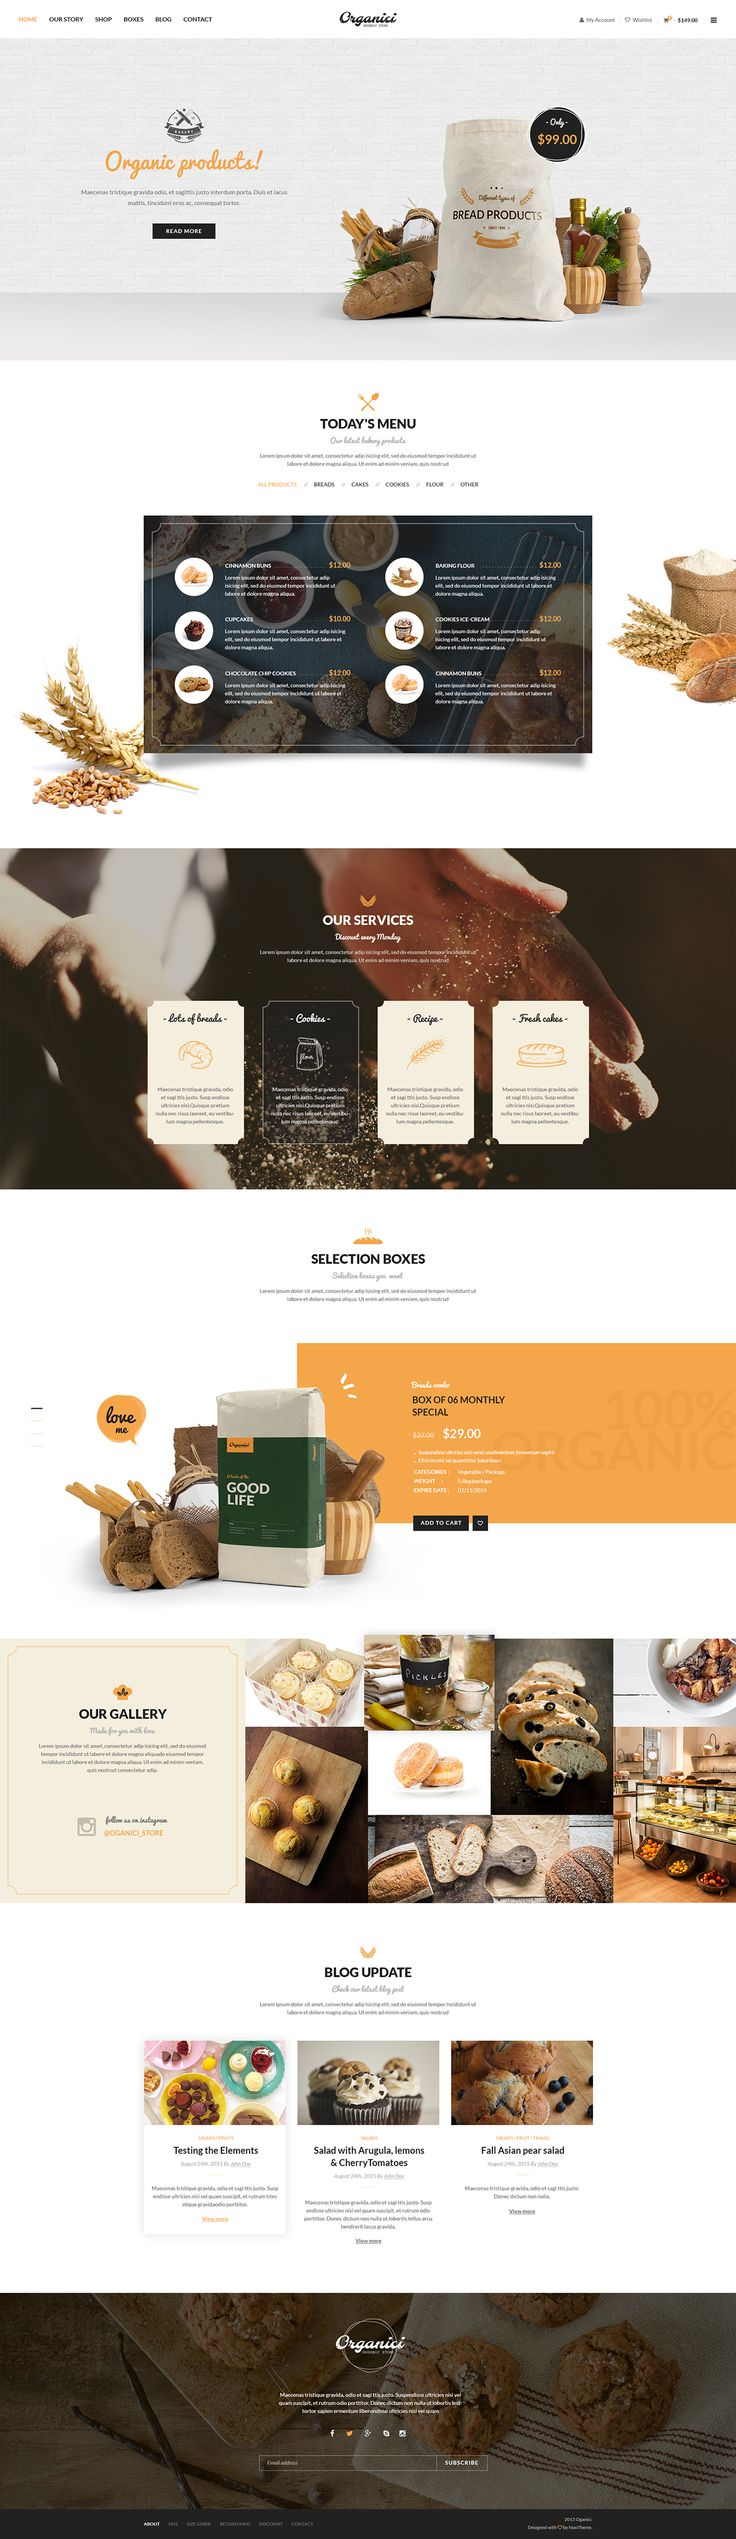 organici is the premium psd template for organic food shop built especially for any kind